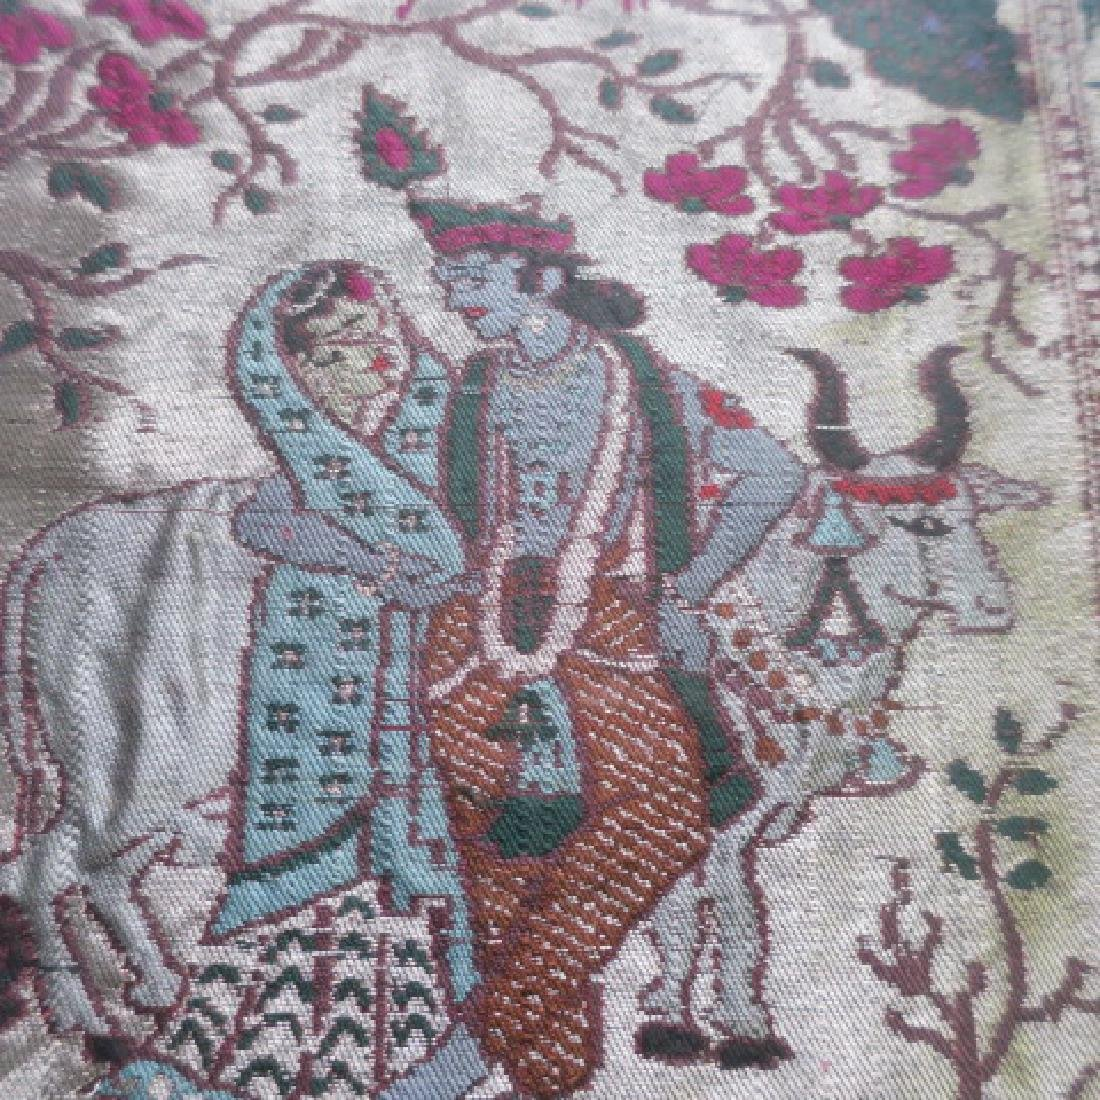 Pictorial Middle Eastern Framed Tapestry: - 5